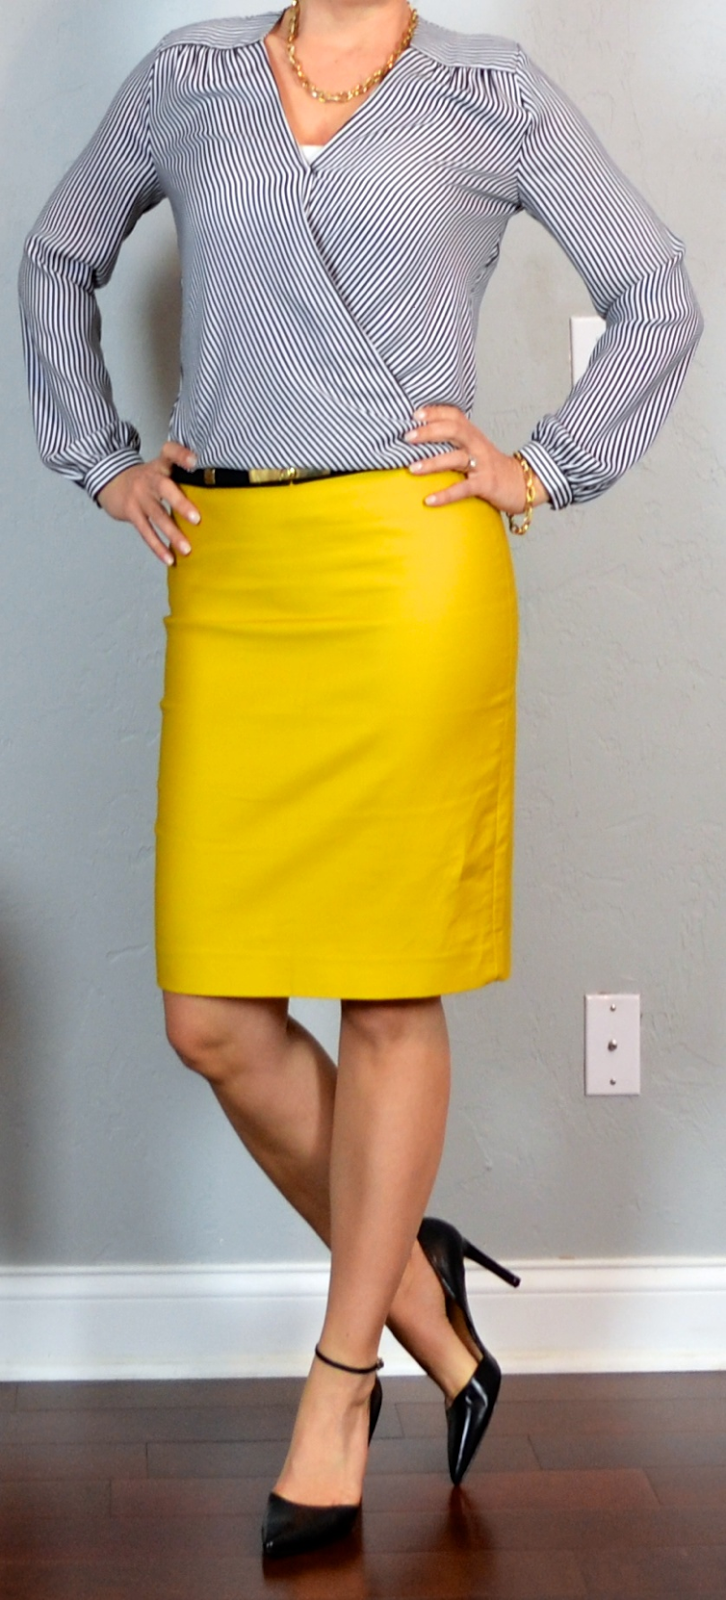 d12a0-yellowwrapblouse